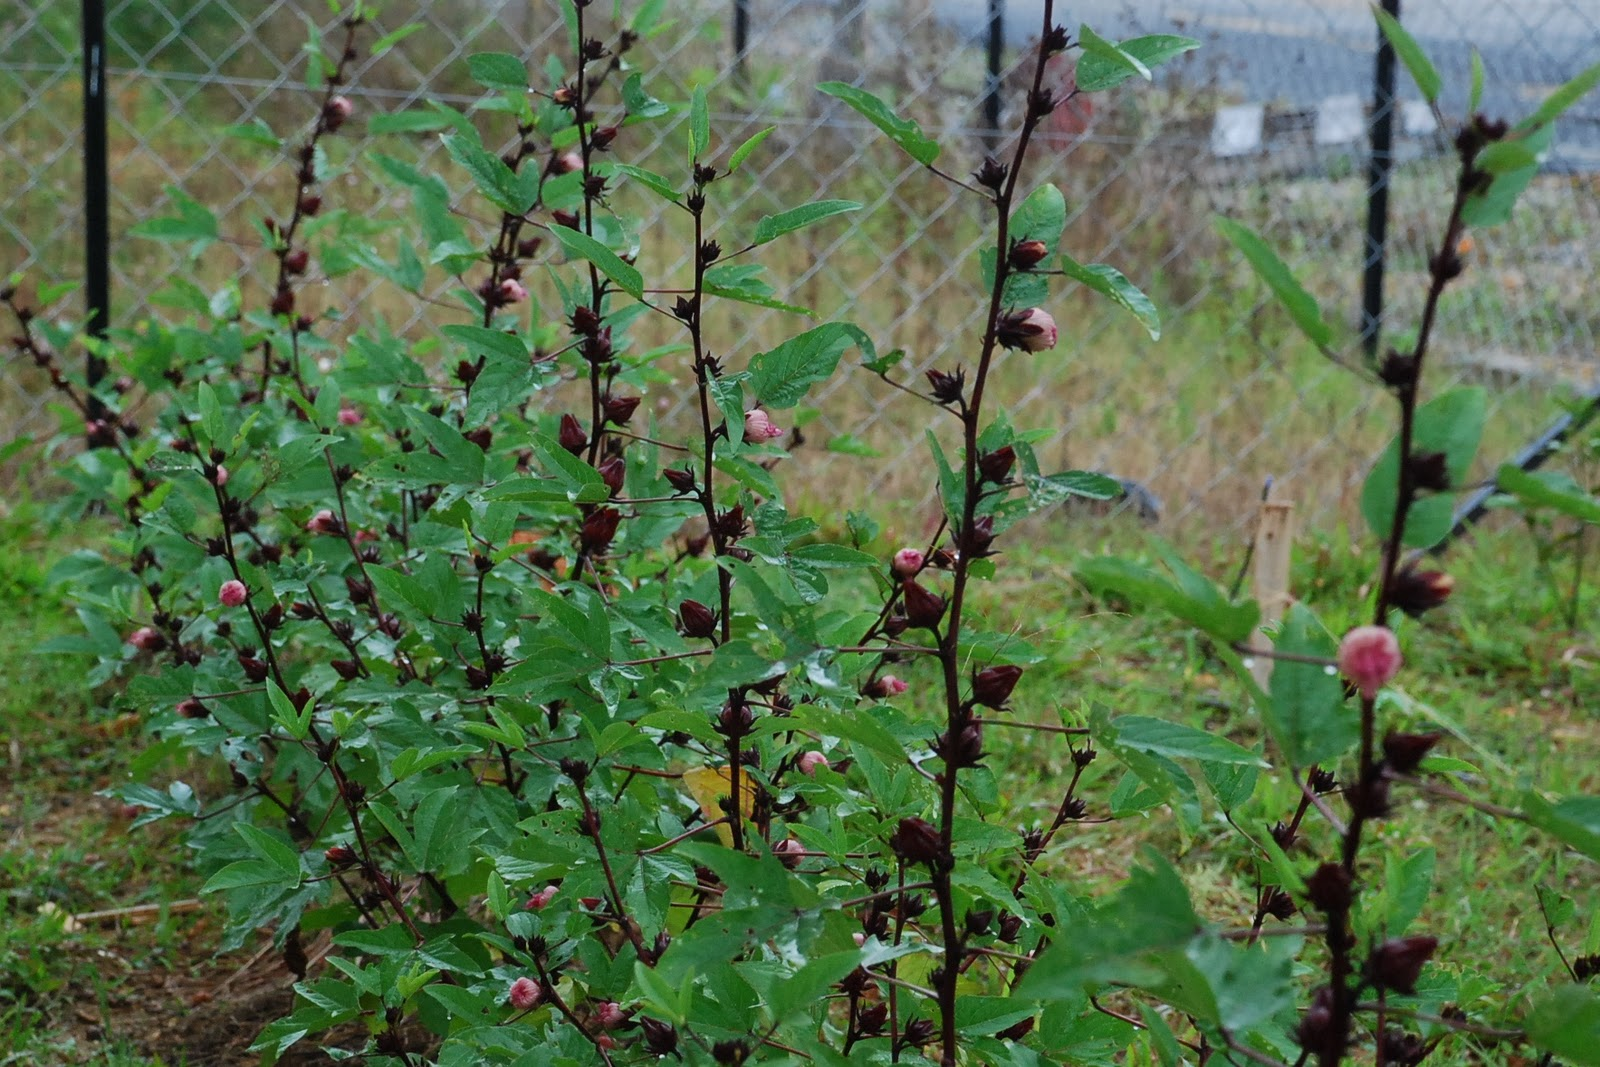 My little vegetable garden: Growing roselle: when they bloom